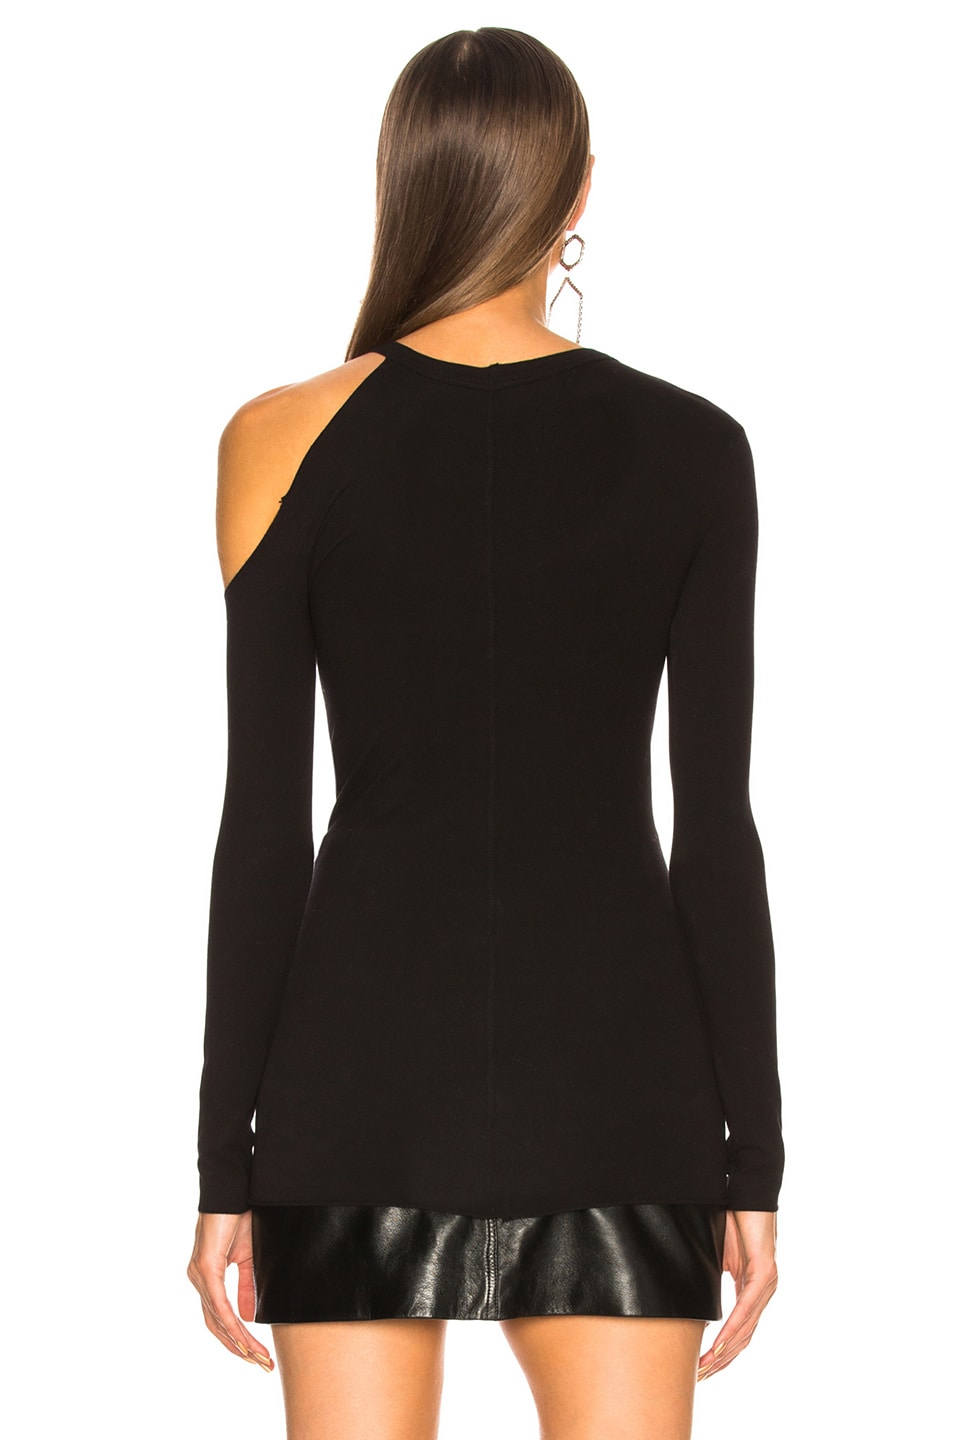 Image 5 of Enza Costa for FWRD Exposed Shoulder Top in Black